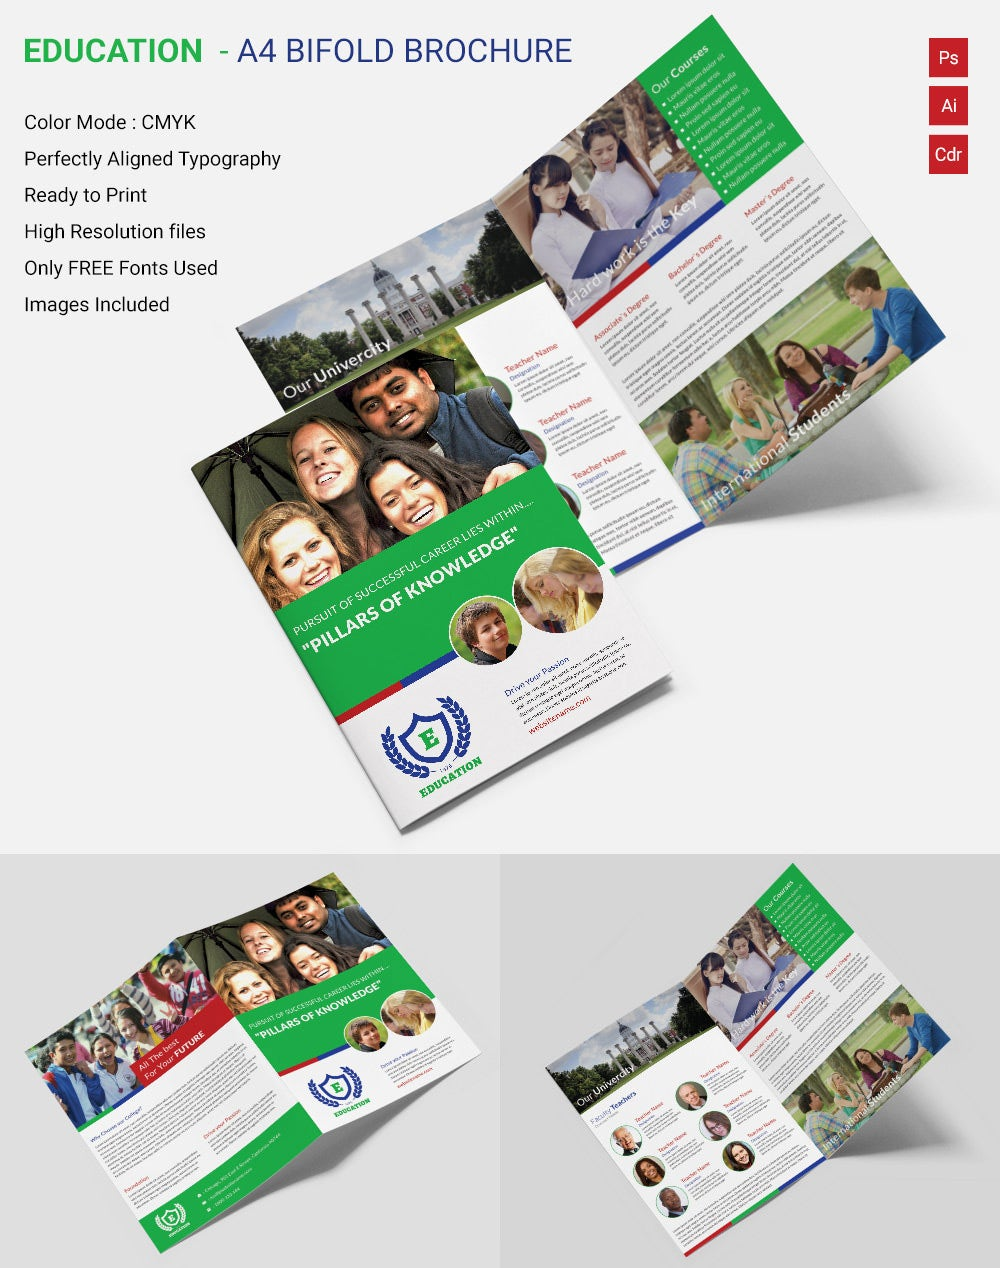 education a4 bi fold brochure - Bi Fold Brochure Template Indesign Free